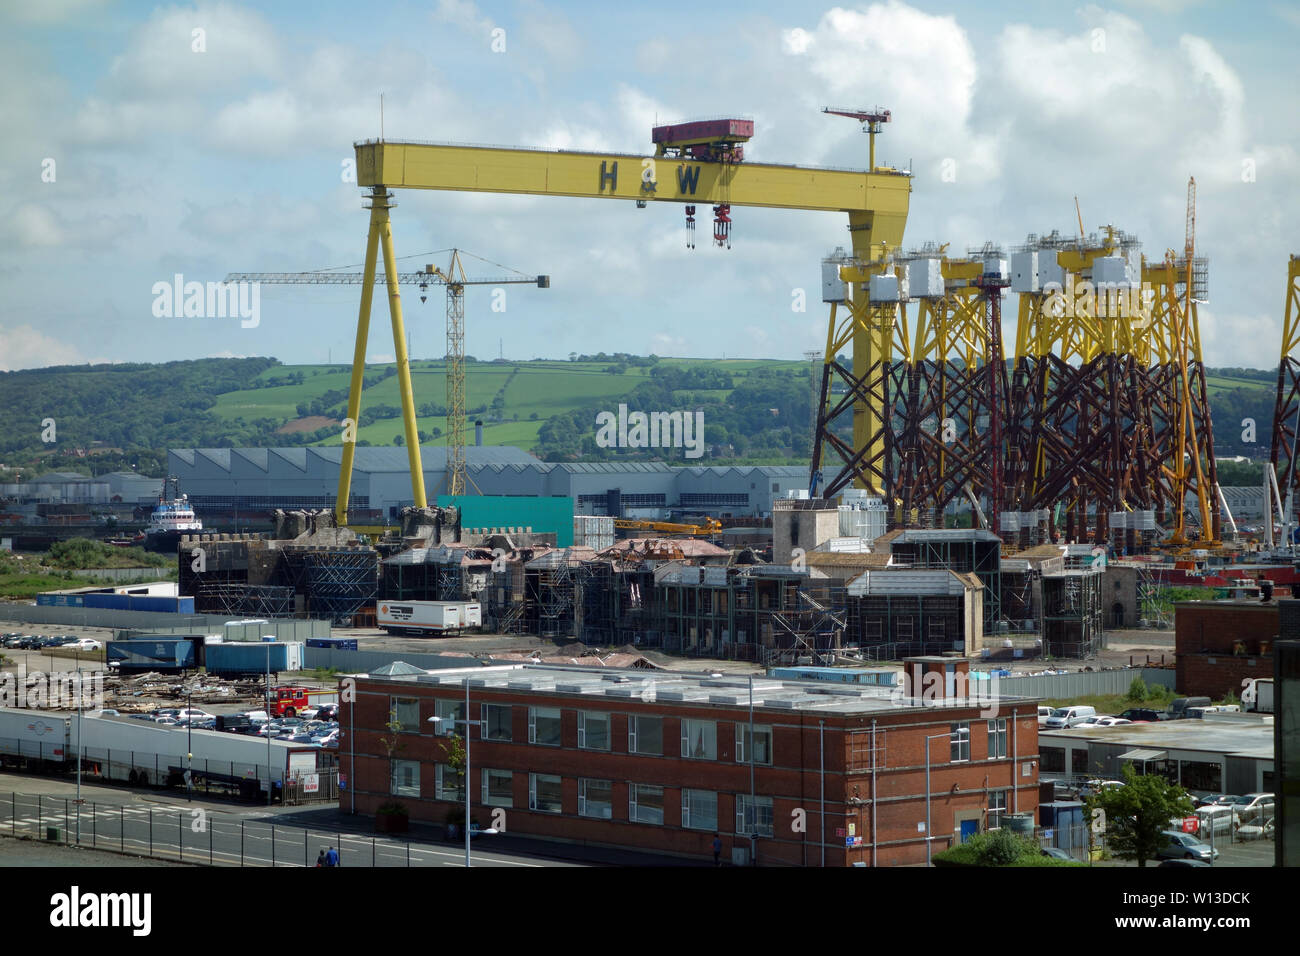 Harland and Wolff Cranes, Samson and Goliath from the Titanic Experience Museum in the Titanic Quarter, Belfast, County Antrim, Northern Ireland, UK. - Stock Image